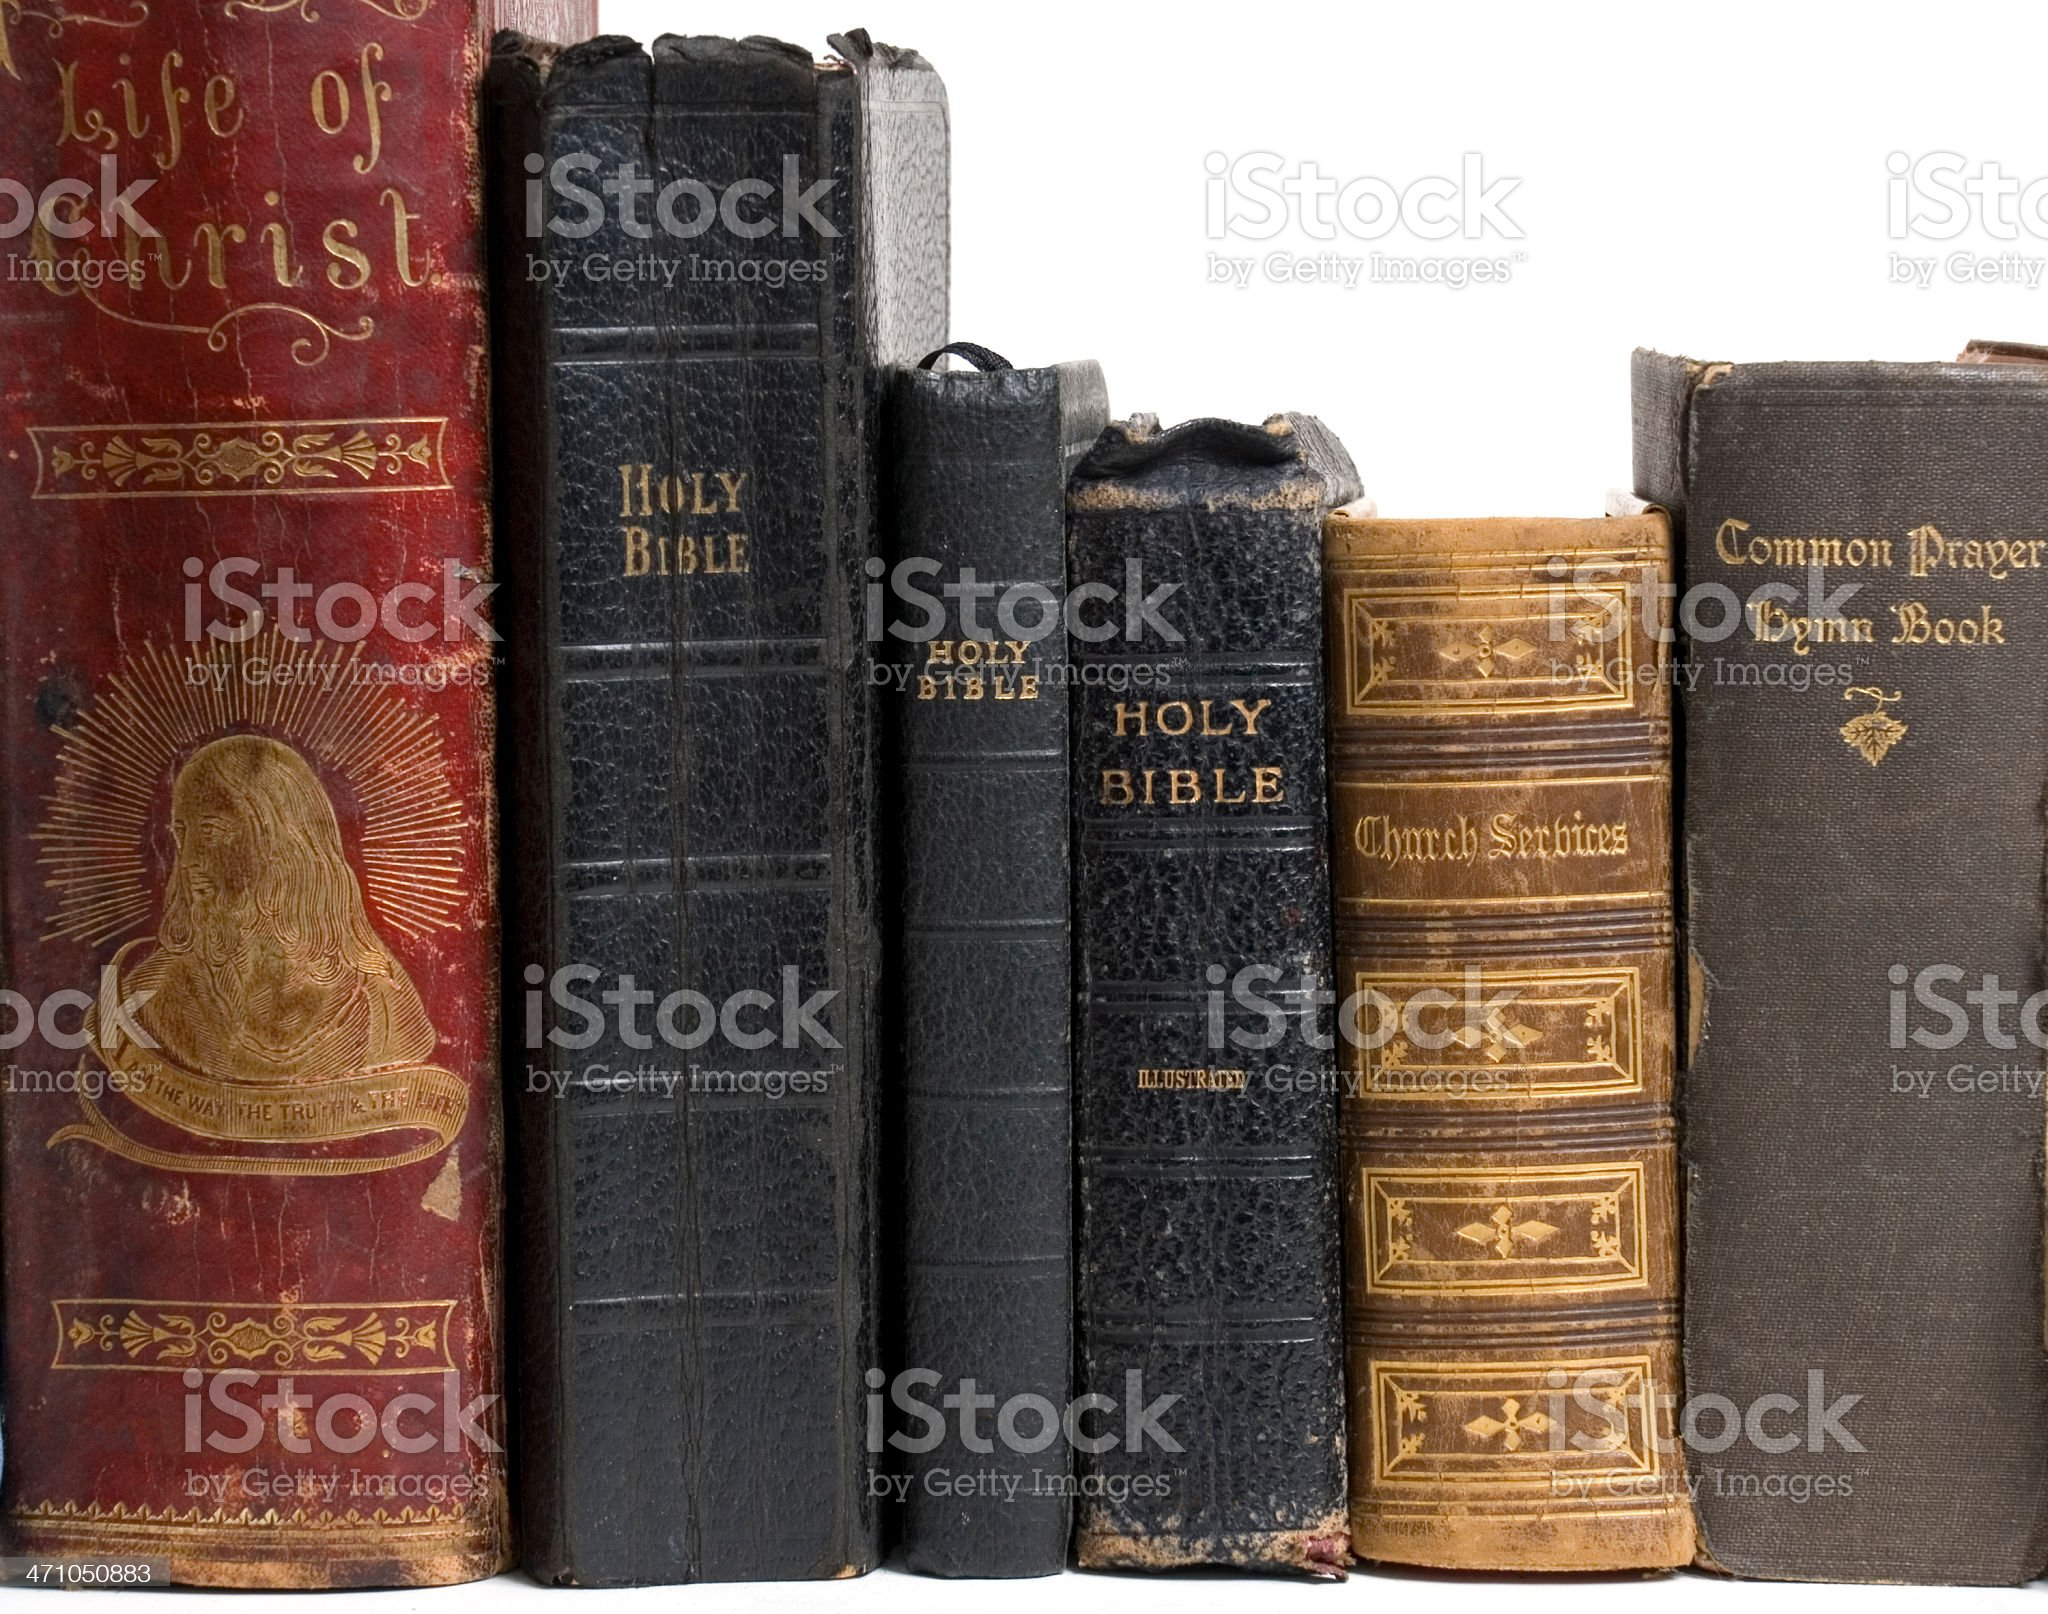 Old religious books and bibles royalty-free stock photo